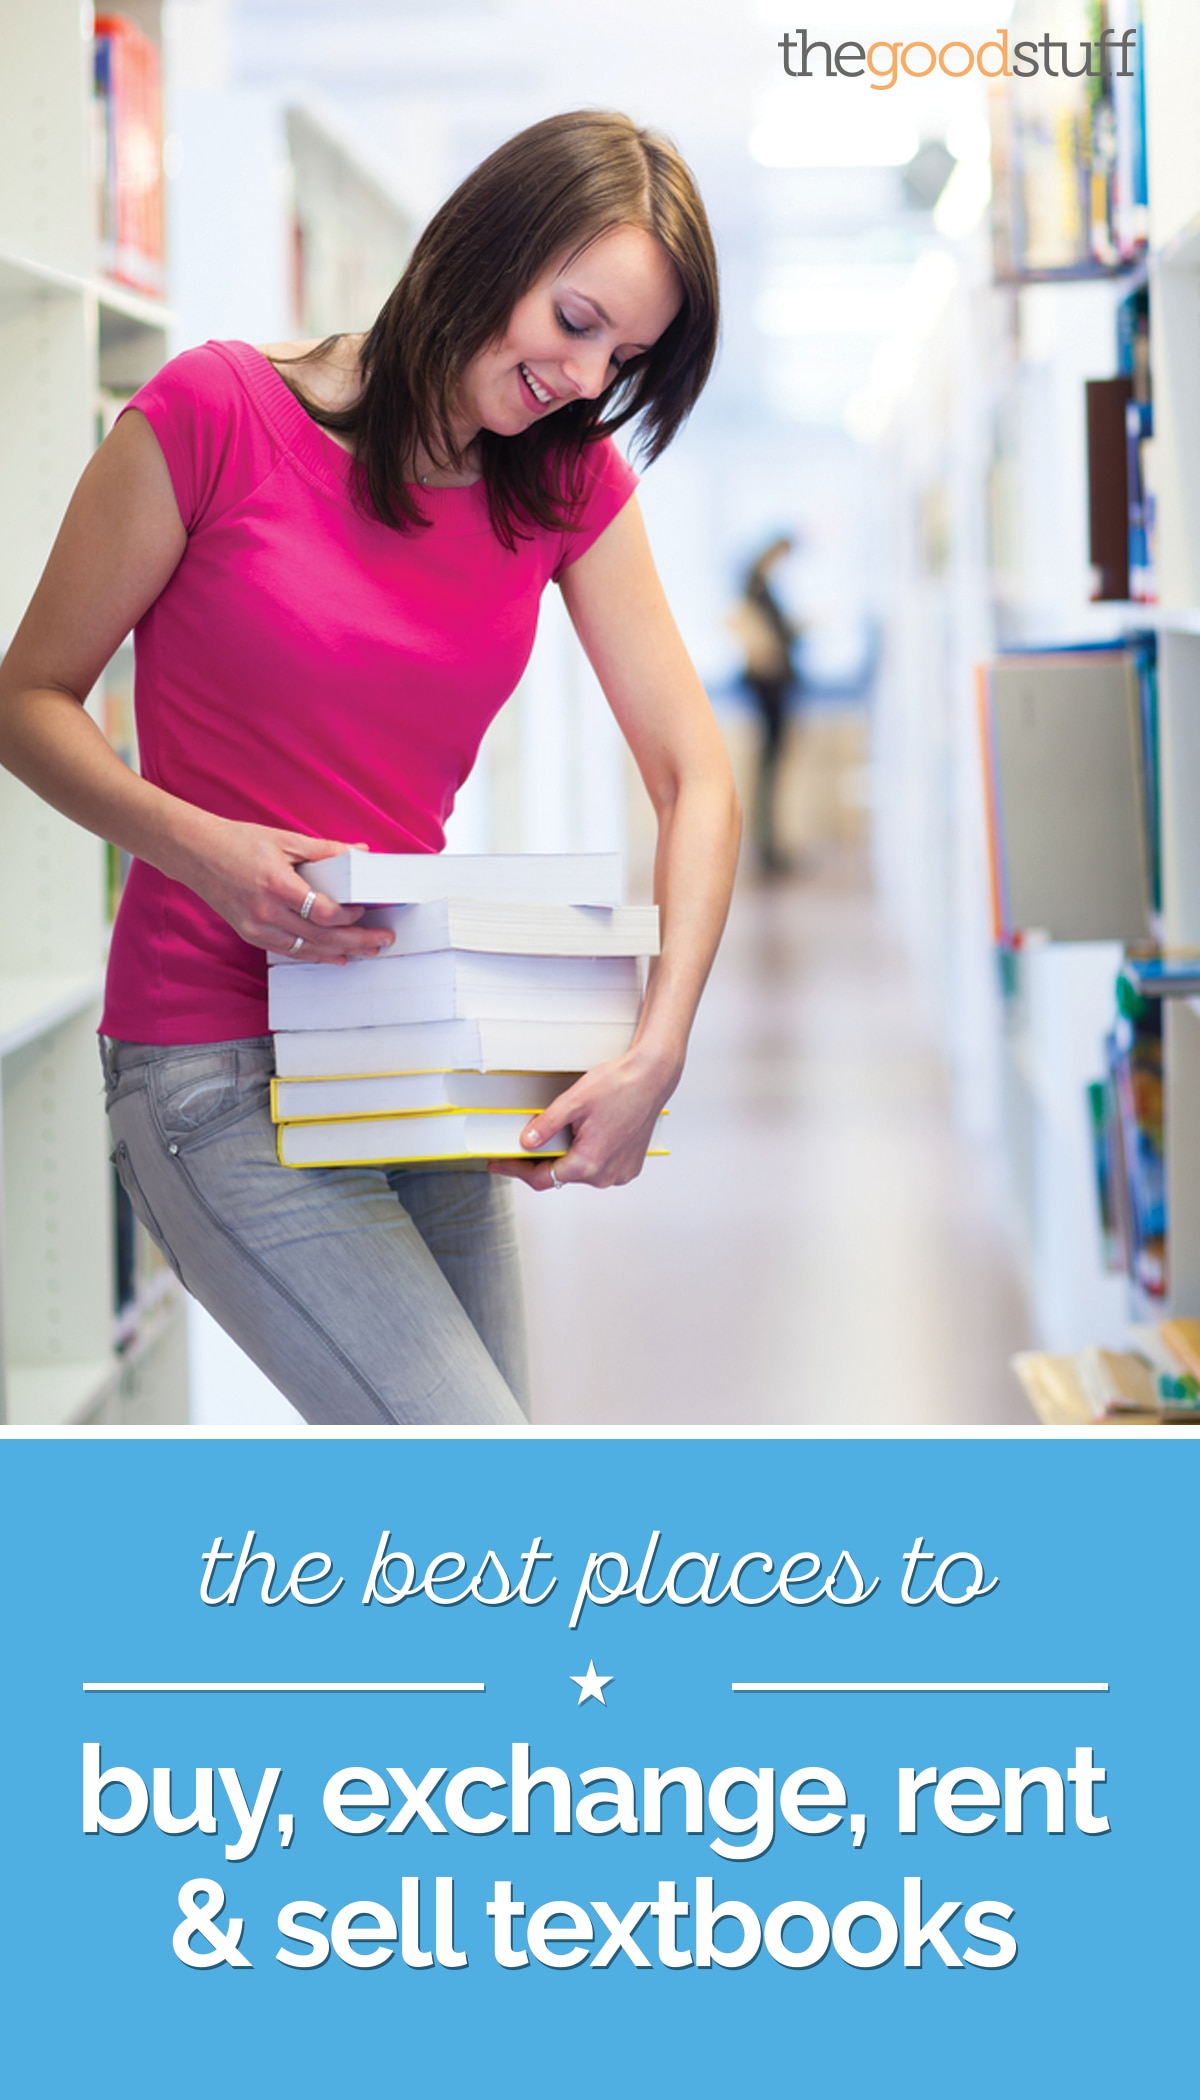 The Best Places to Buy, Exchange, Rent & Sell Textbooks | thegoodstuff